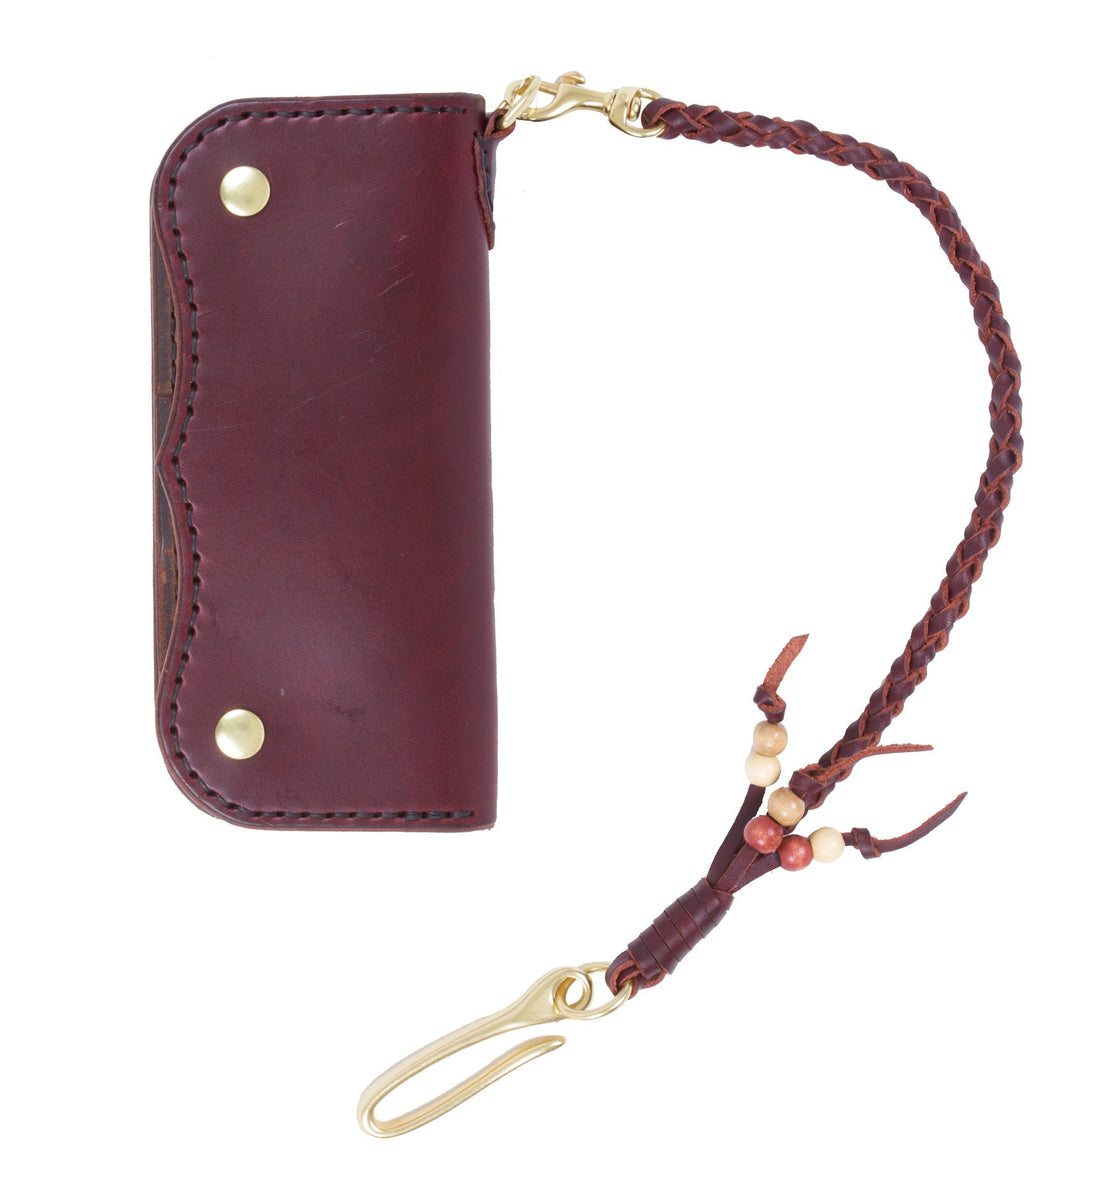 Cult Classic Leather Magnum Wallet, Brown w/braid - Accessories: Wallets - Iron and Resin